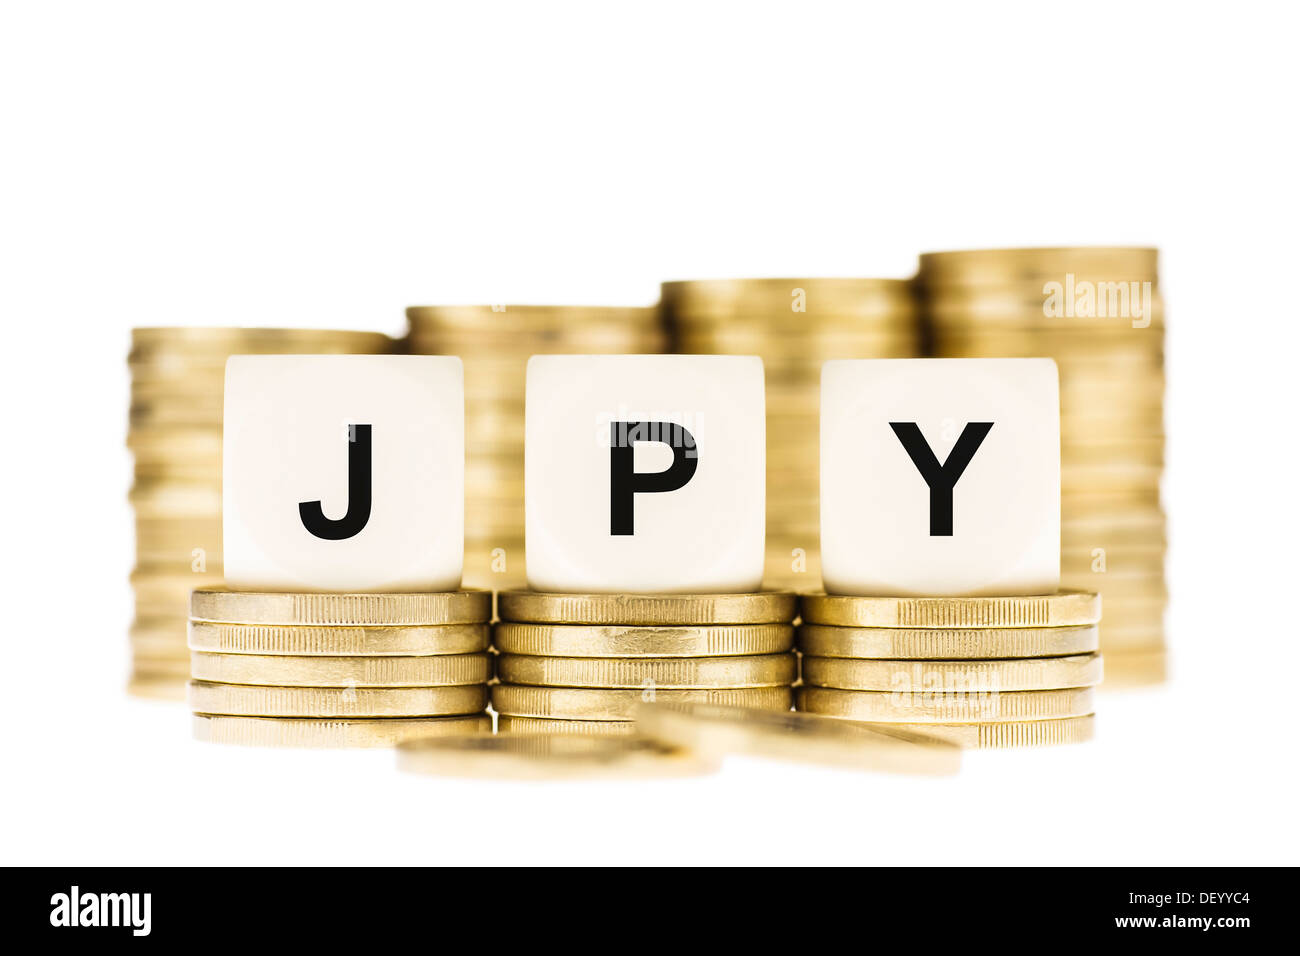 JPY (Japanese Currency) on Gold Coin Stacks Isolated on White - Stock Image